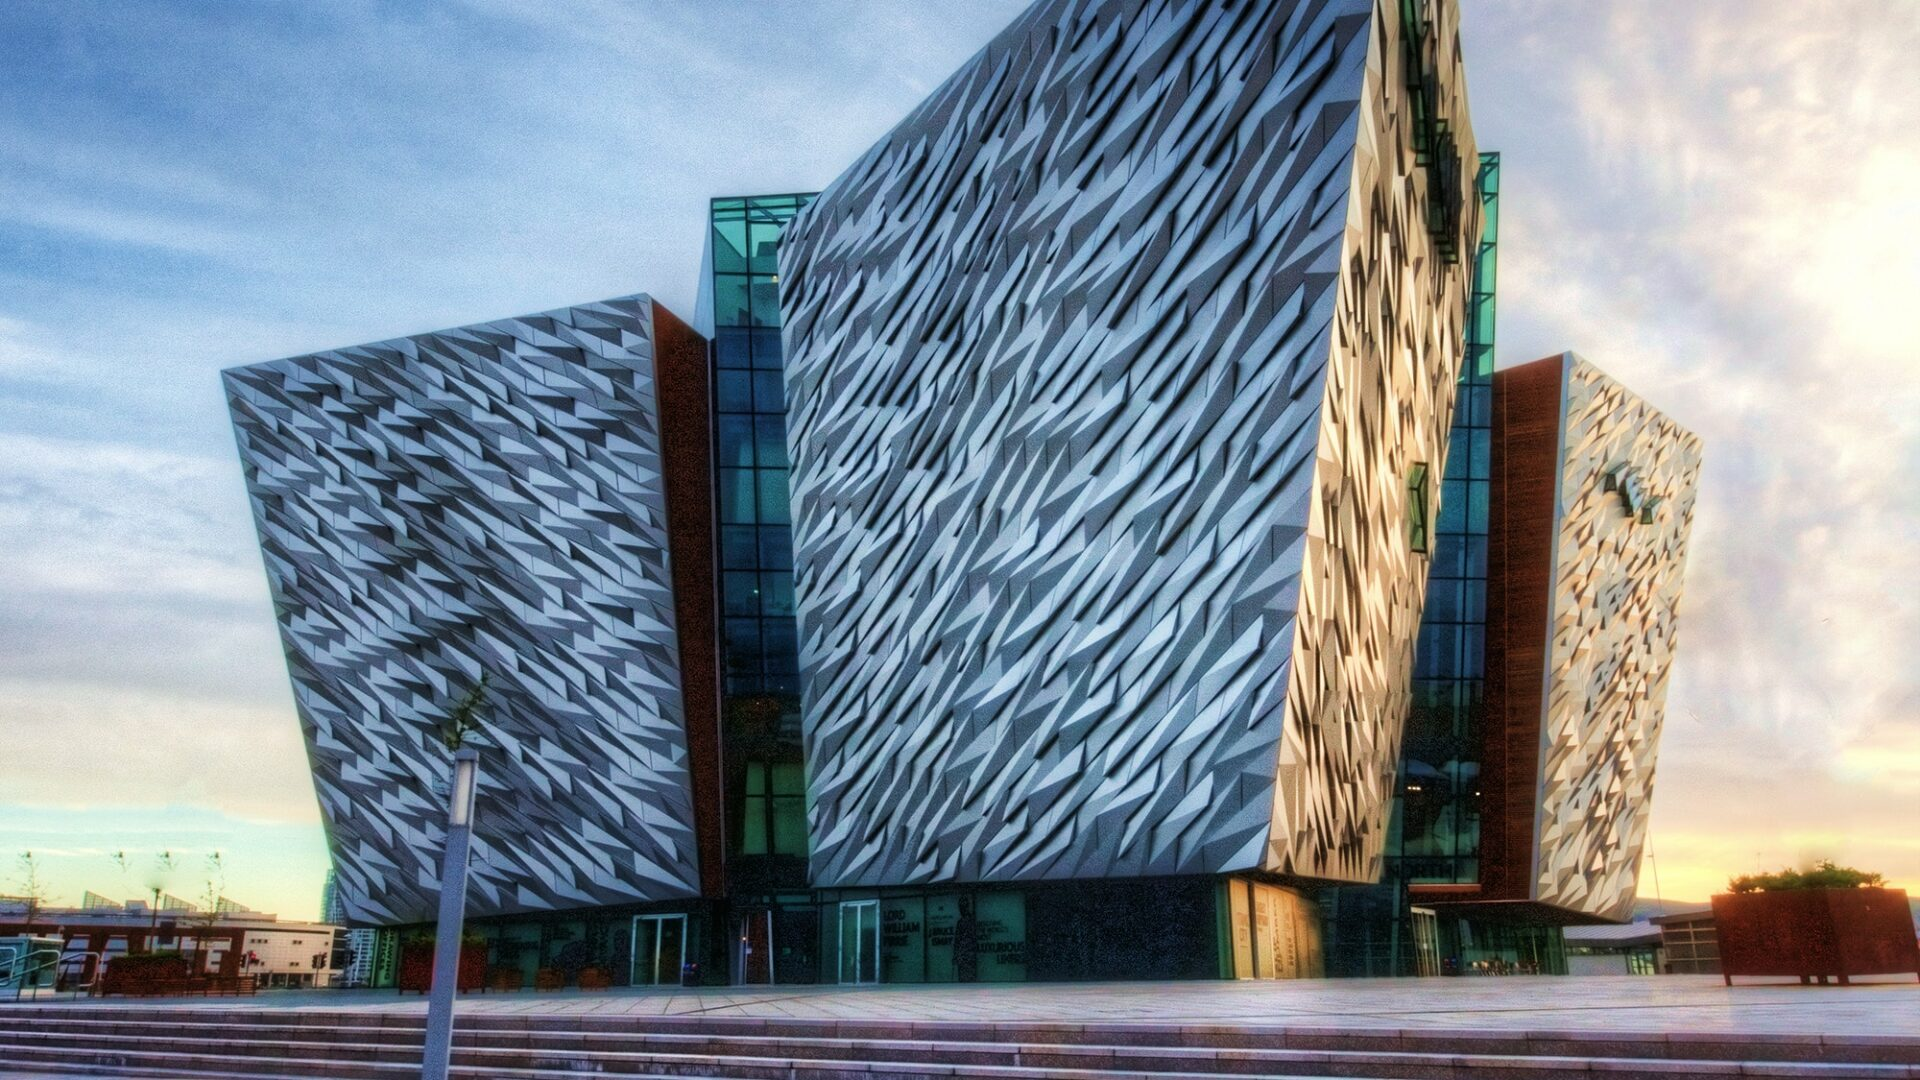 Cool architectural design and building in Belfast